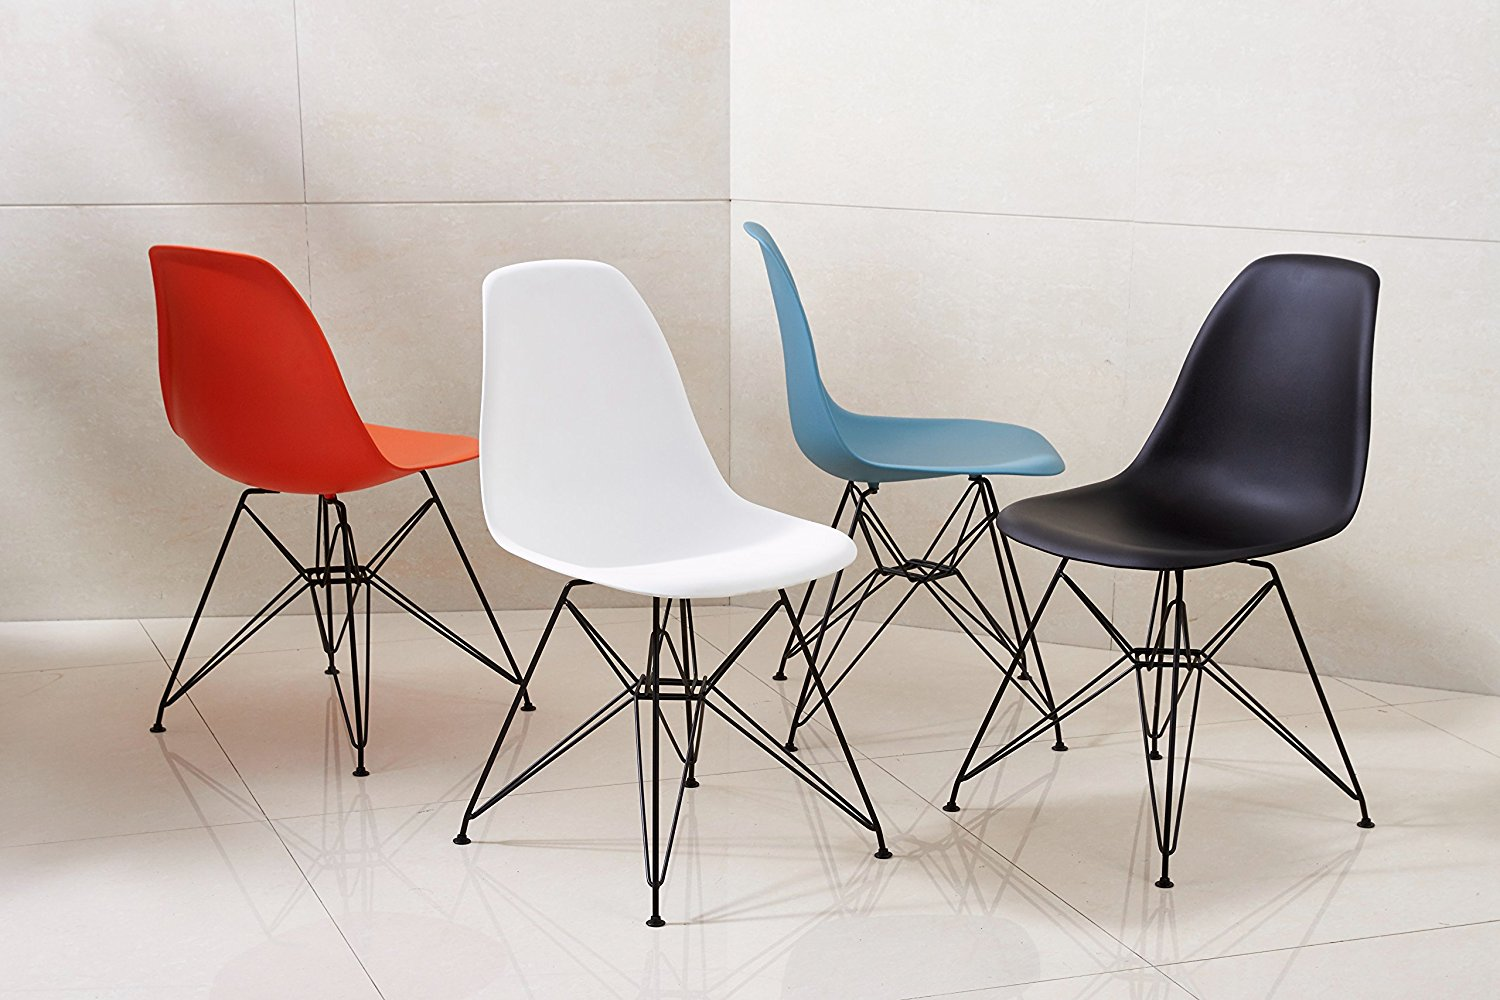 Crossroads Black Rostock Chair Shop For Affordable Home Furniture Decor Outdoors And More